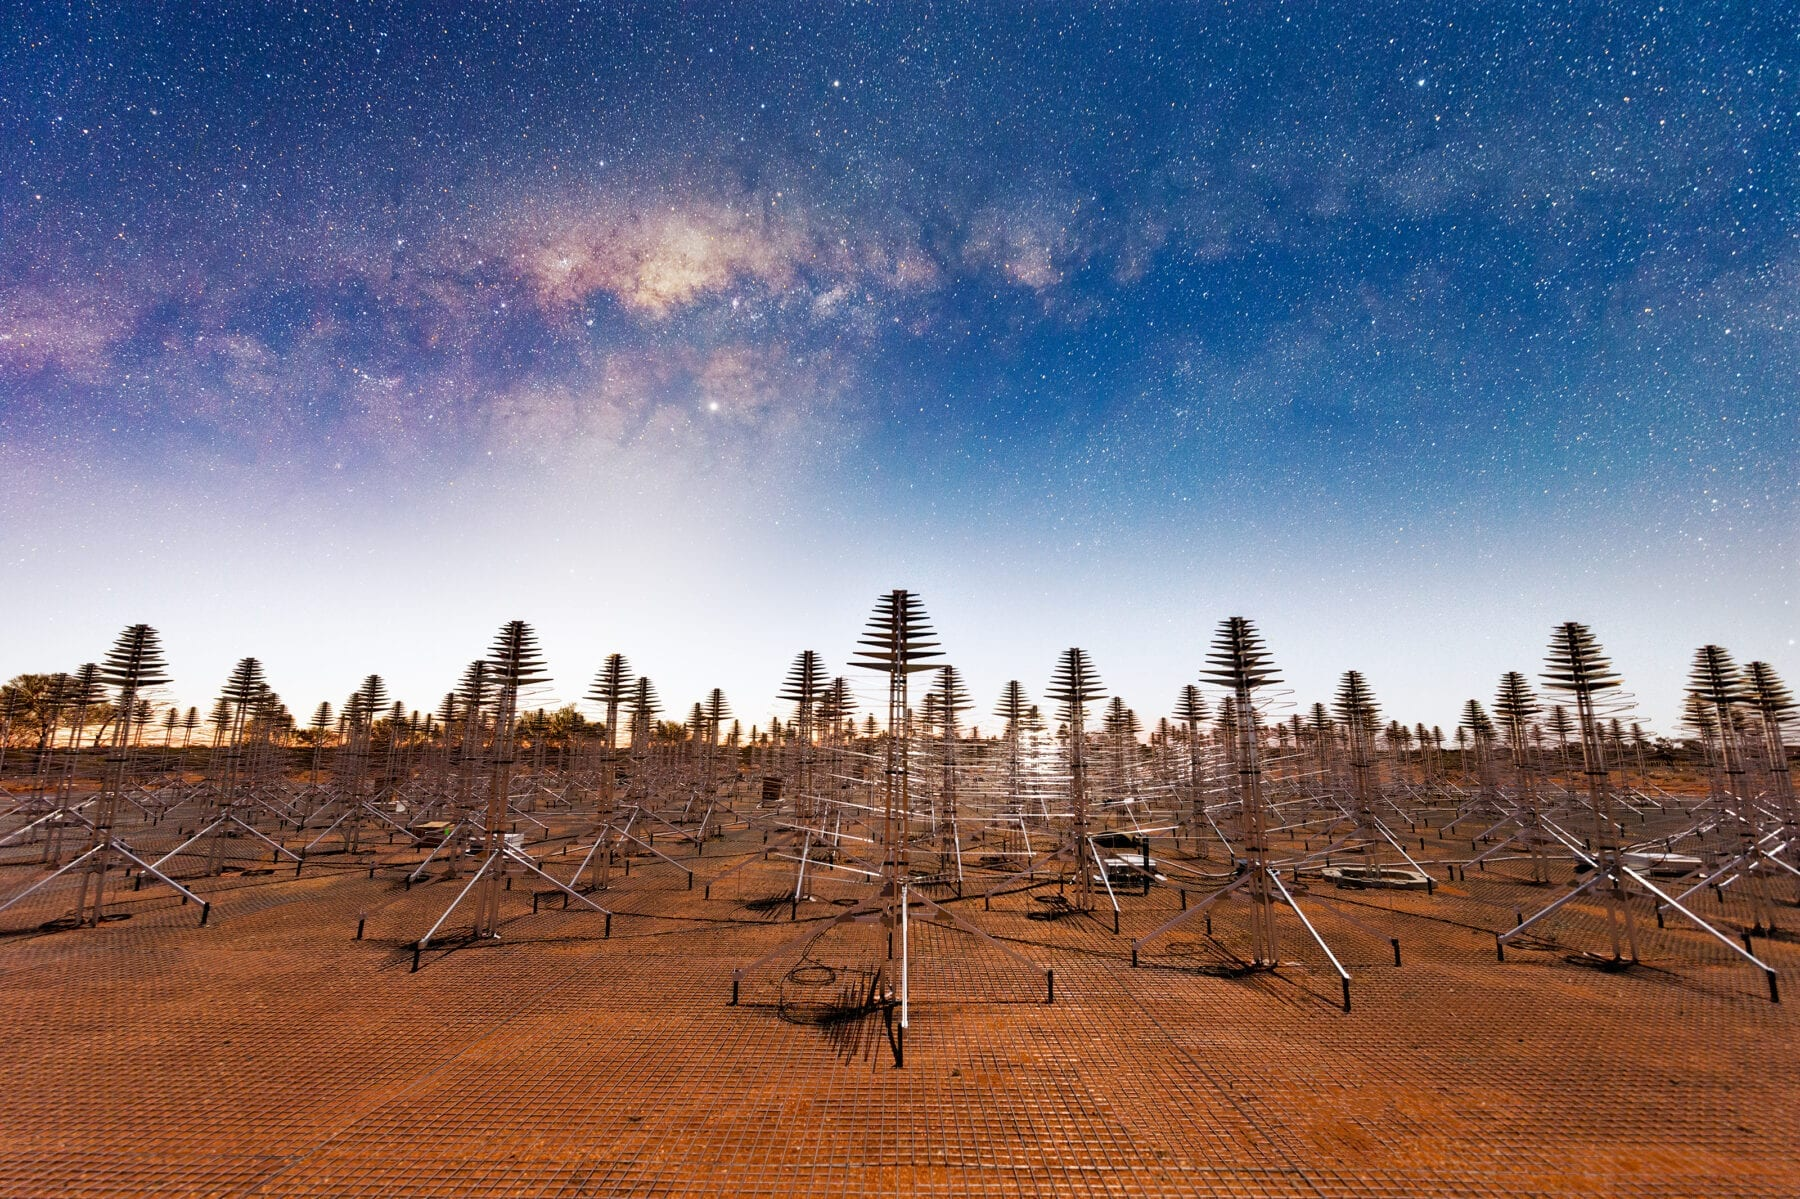 A 20-second exposure showing the Milky Way overhead the AAVS station. Credit: Michael Goh and ICRAR/Curtin.